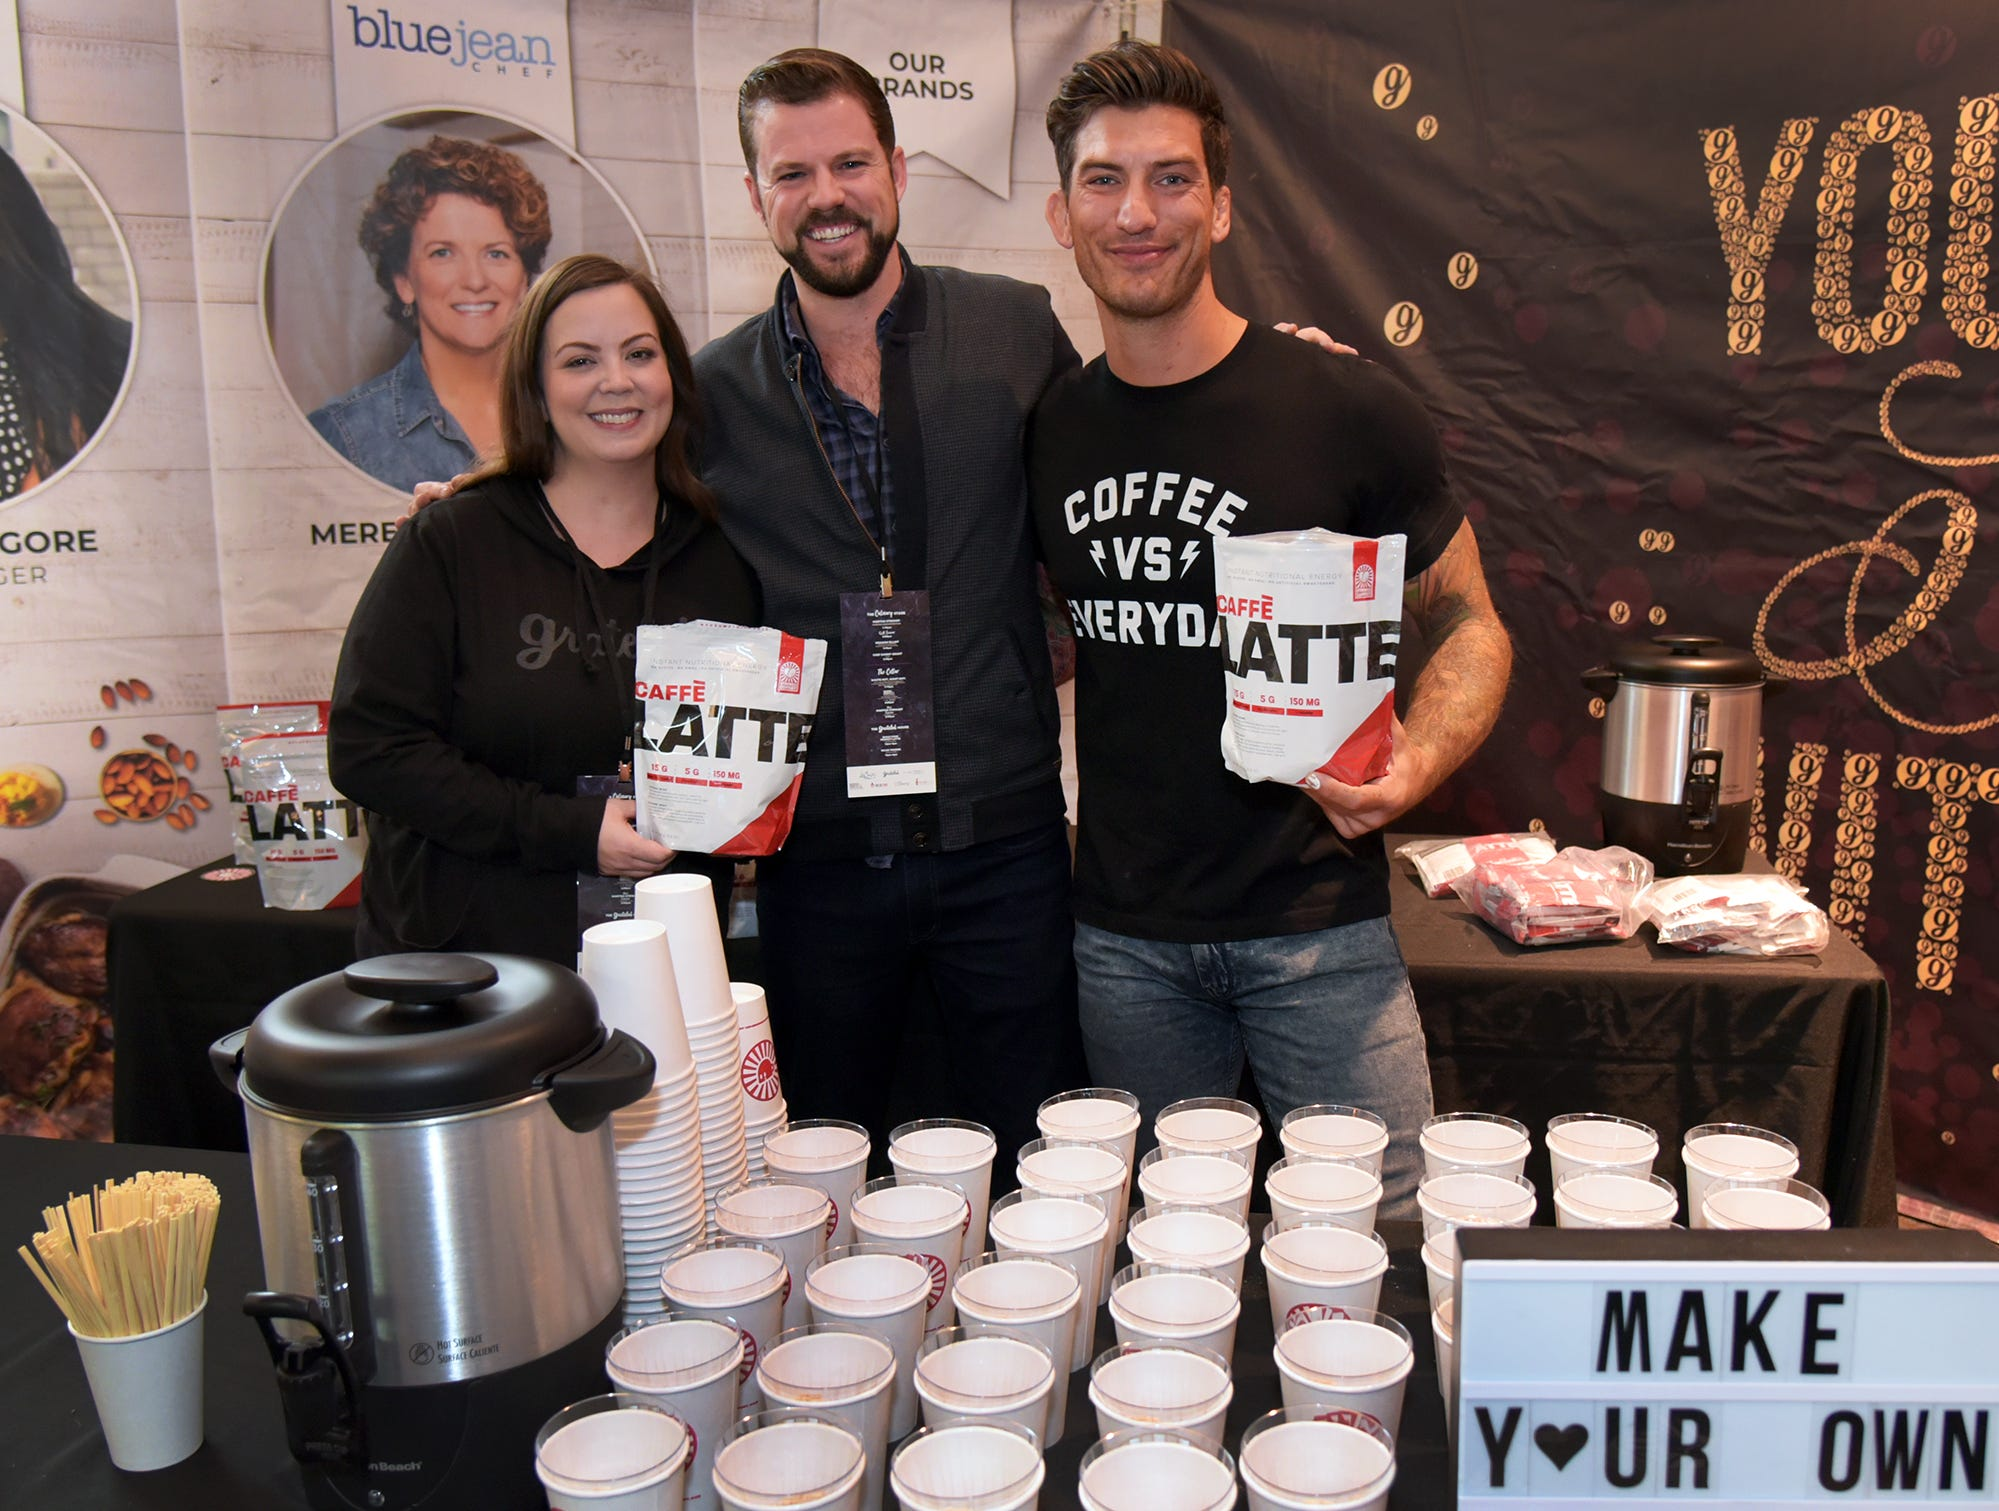 Make your own latte at Wine & Food Experience.